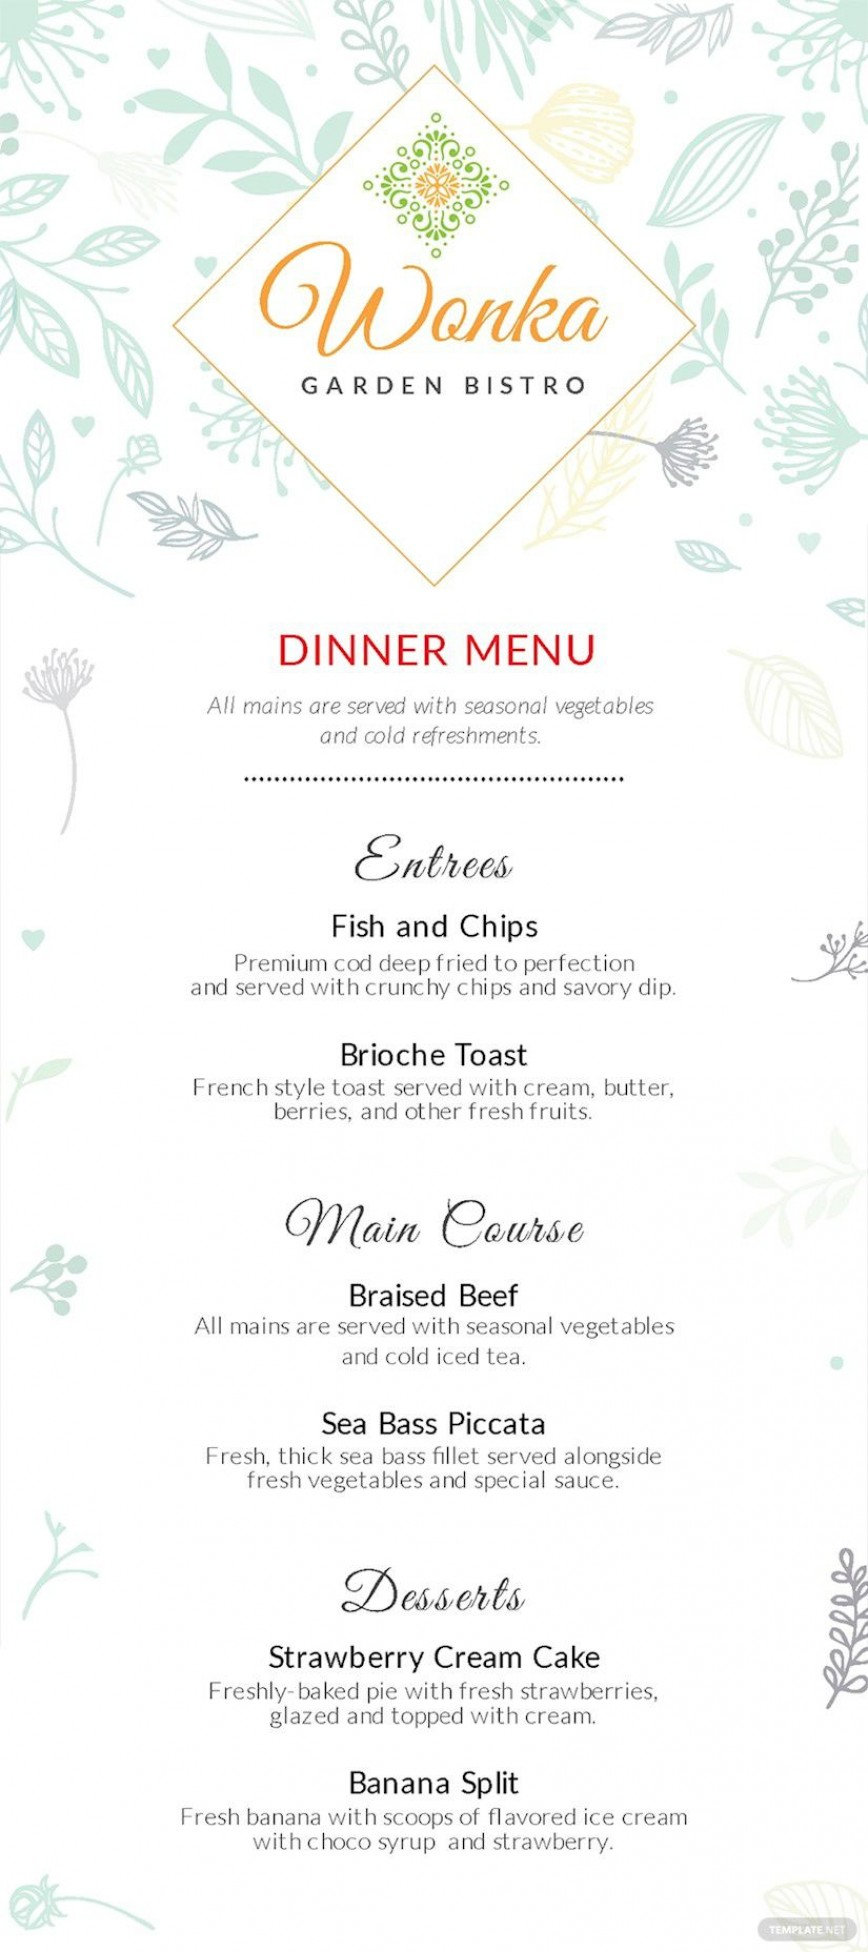 005 Shocking Dinner Party Menu Template High Def  Google Doc Card Free Download Word